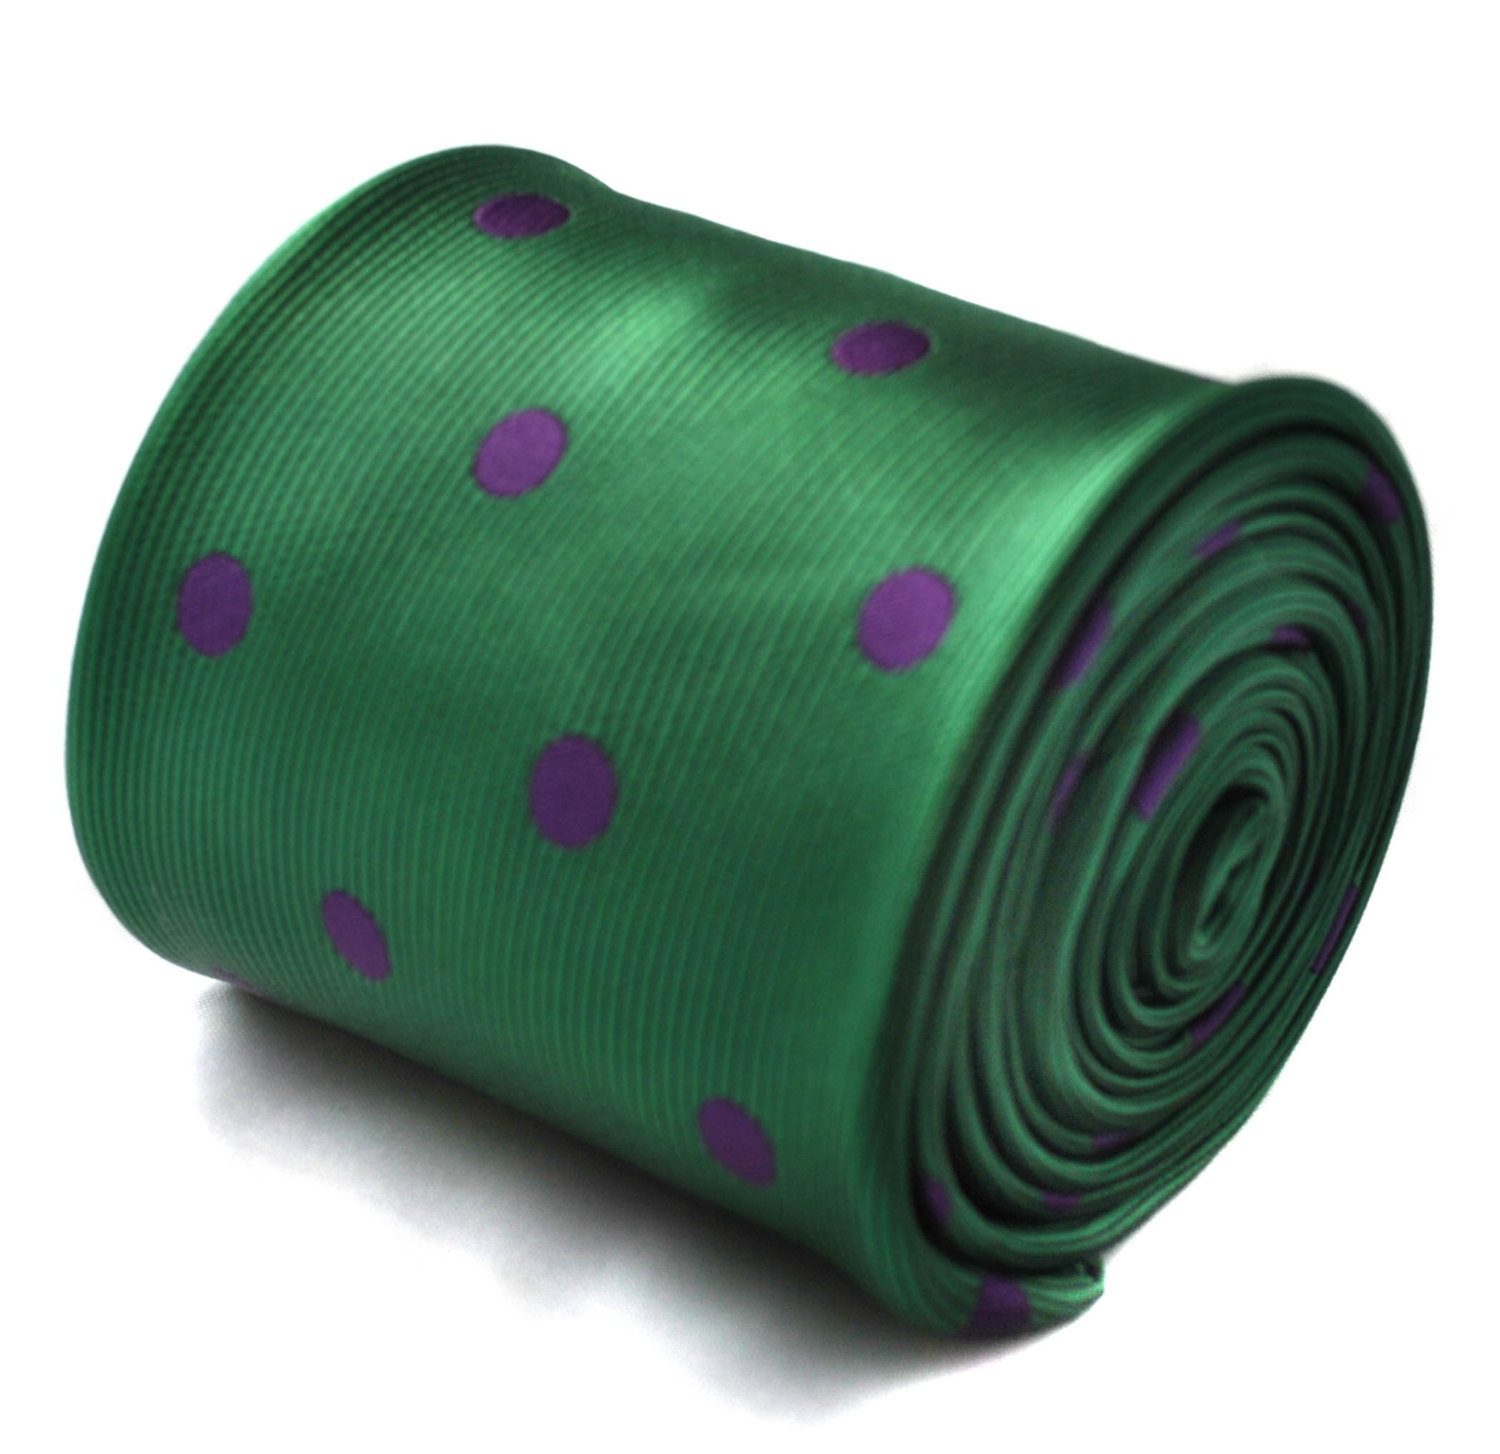 green and purple polka spot tie with signature floral design to the rear by Fred